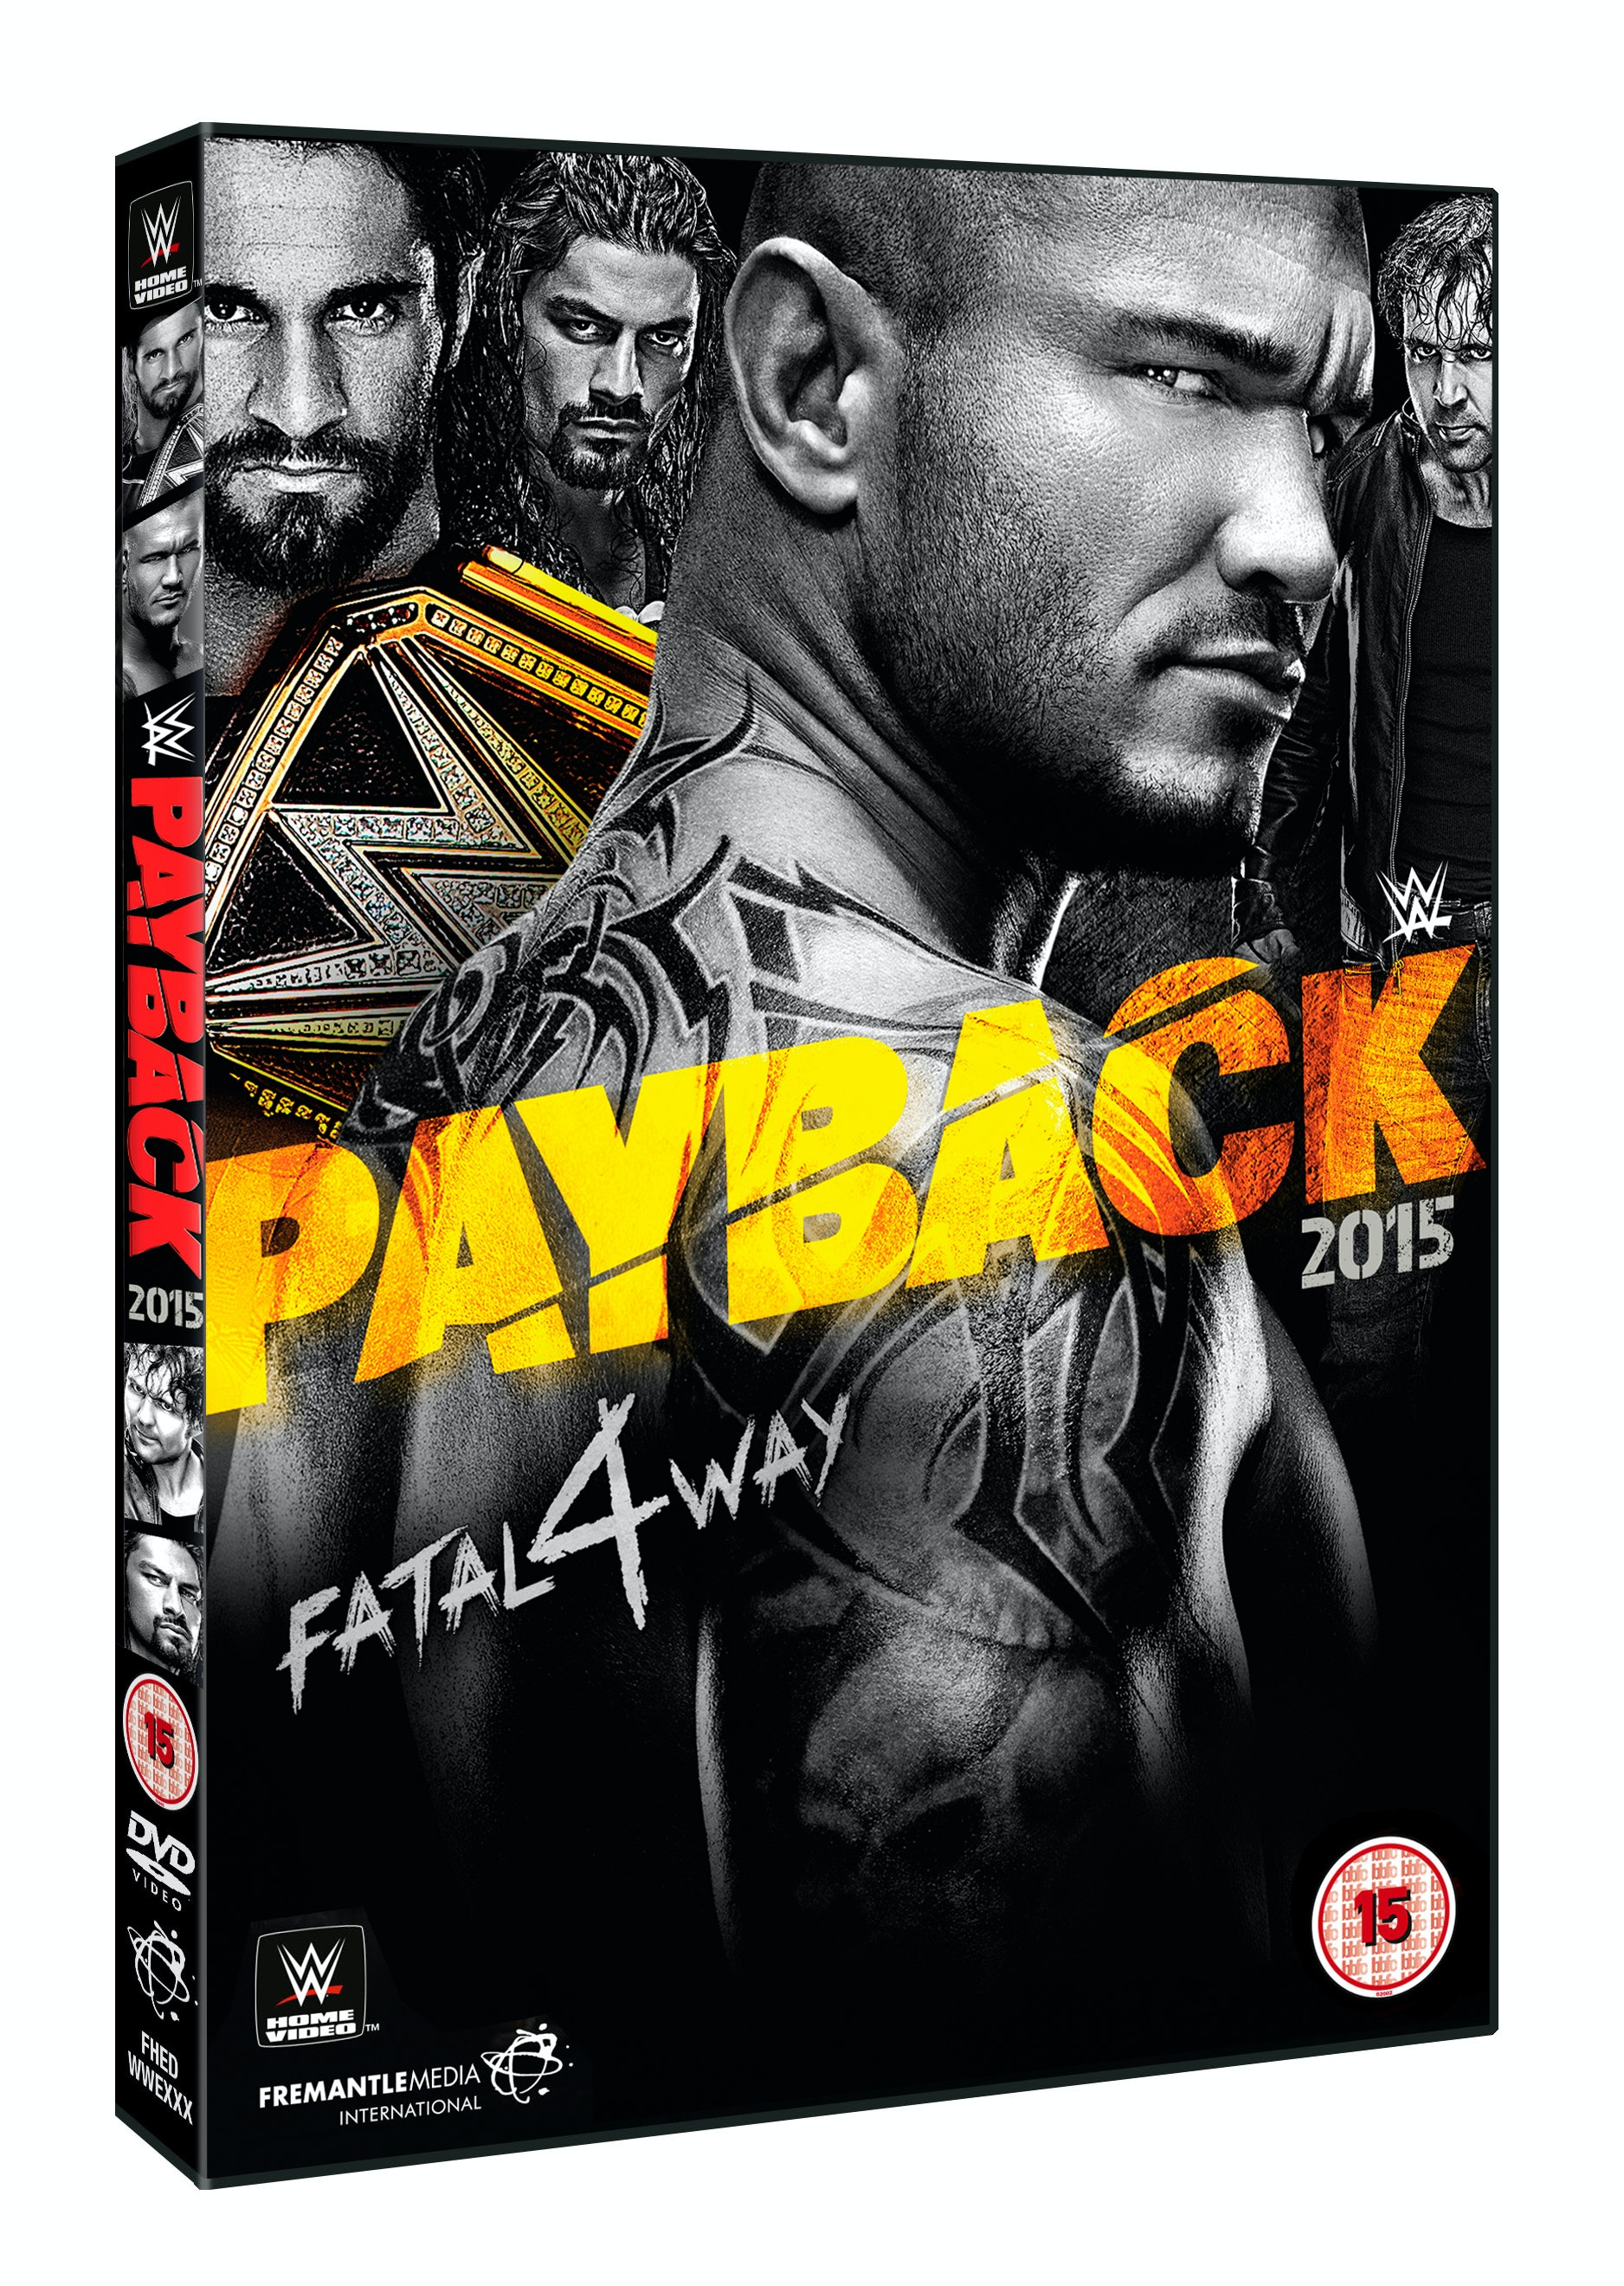 WWE Payback 2015 DVD sweepstakes